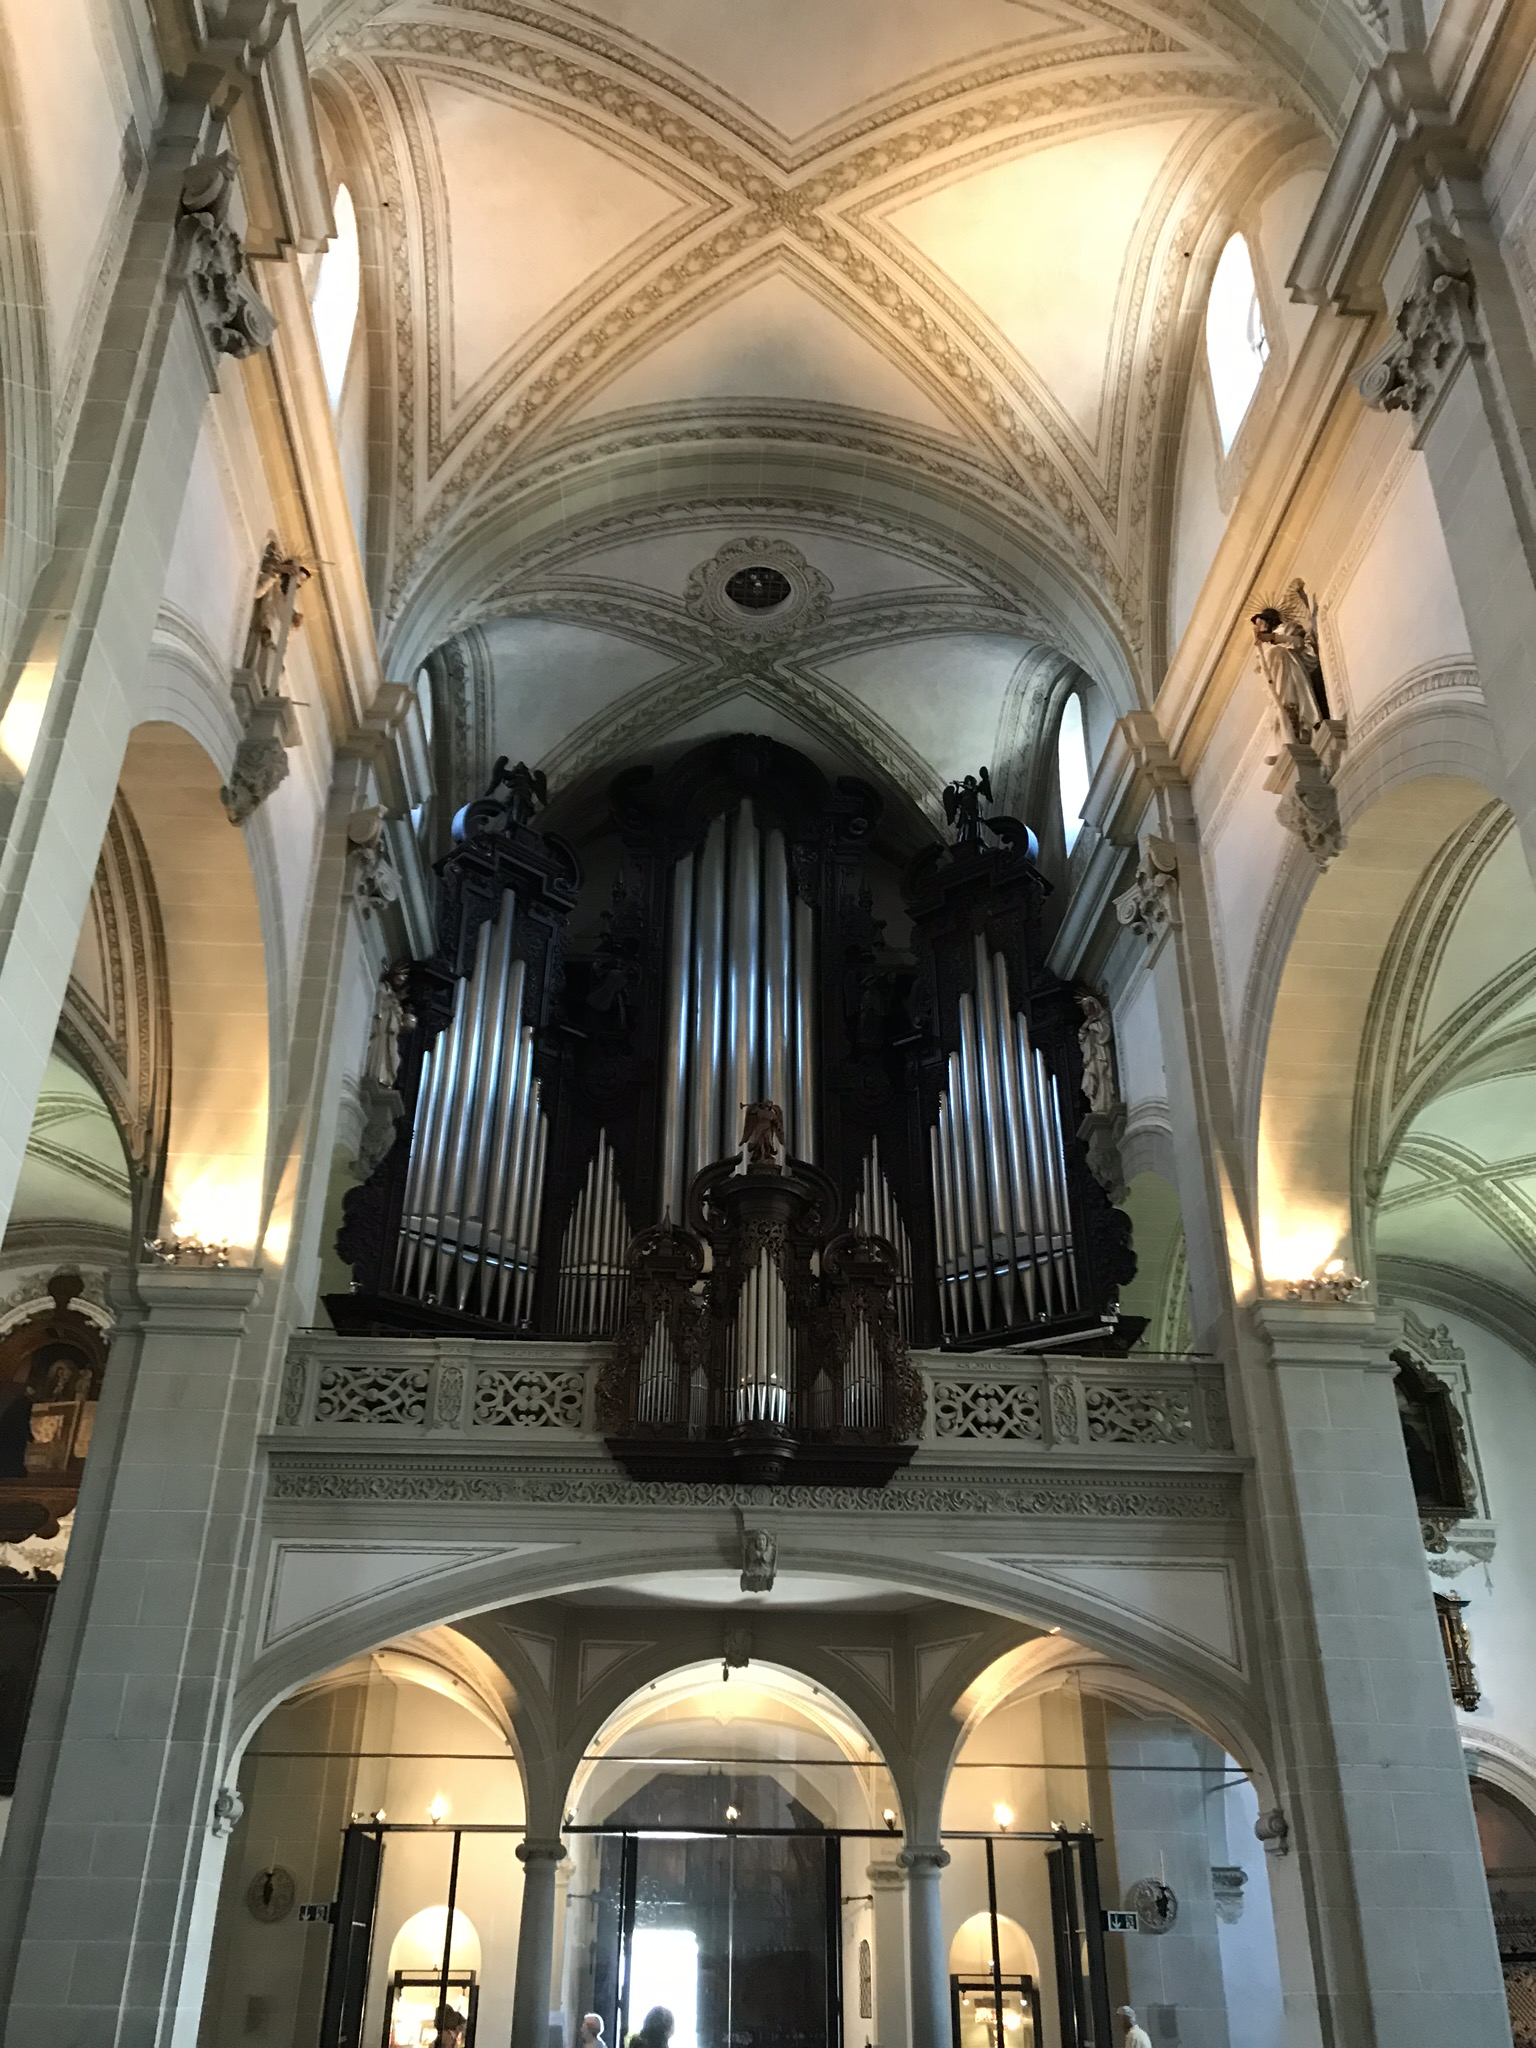 The mighty organ pipes!